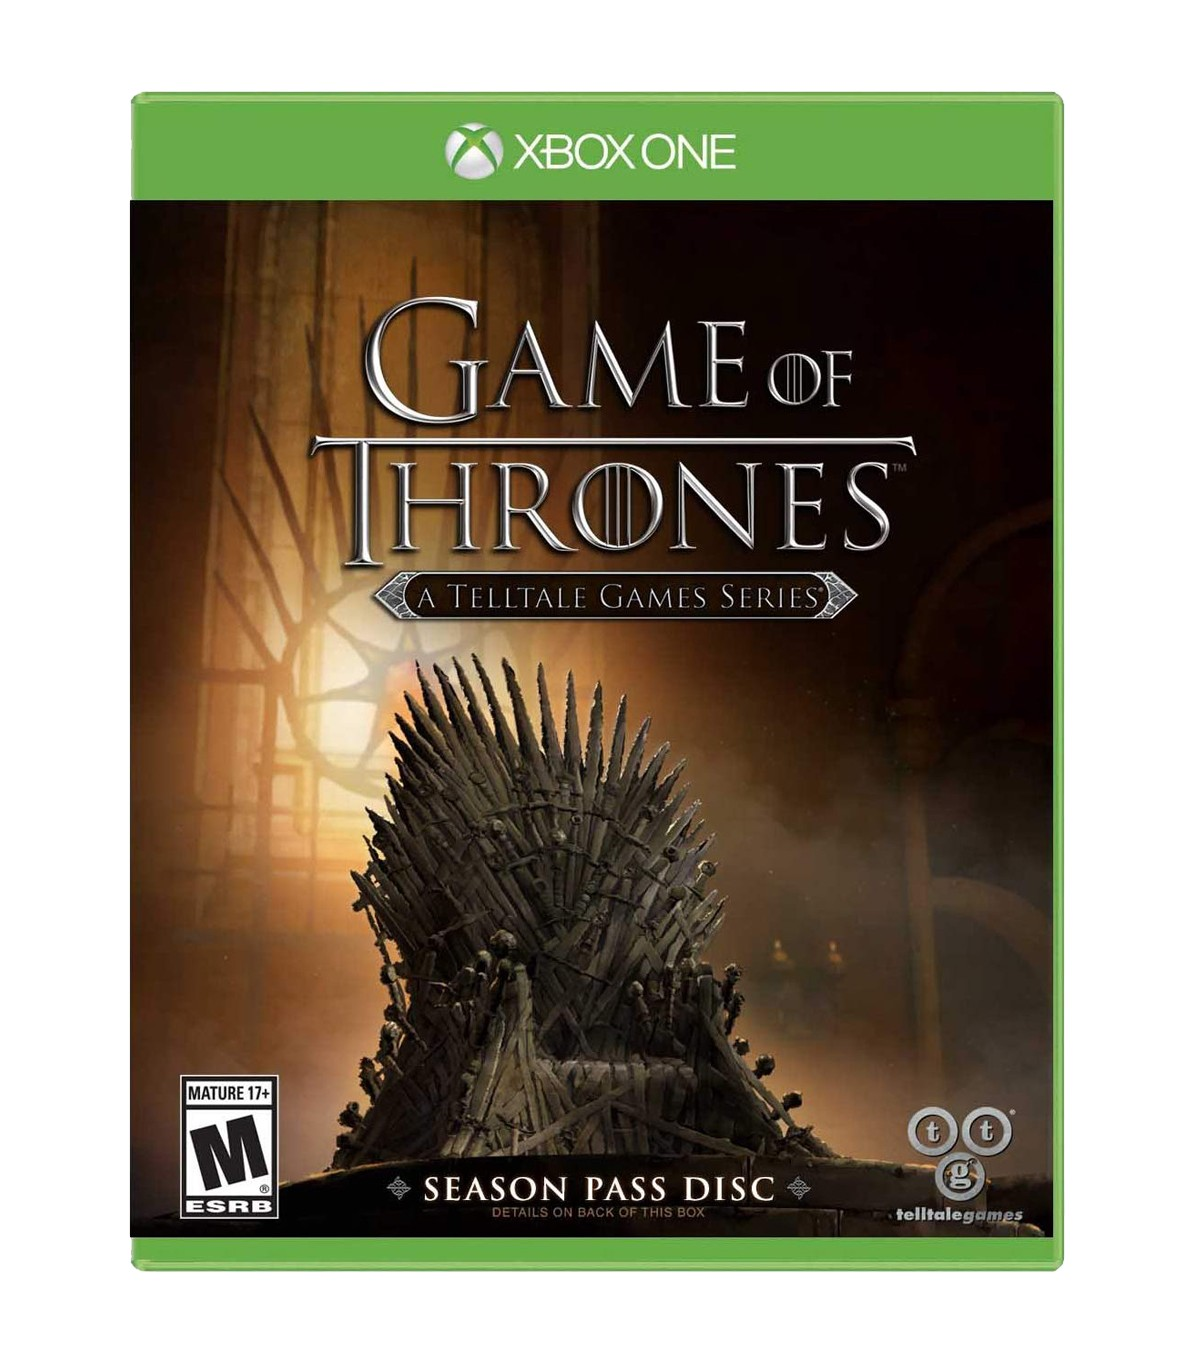 بازی Game of Thrones - A Telltale Games Series - ایکس باکس وان